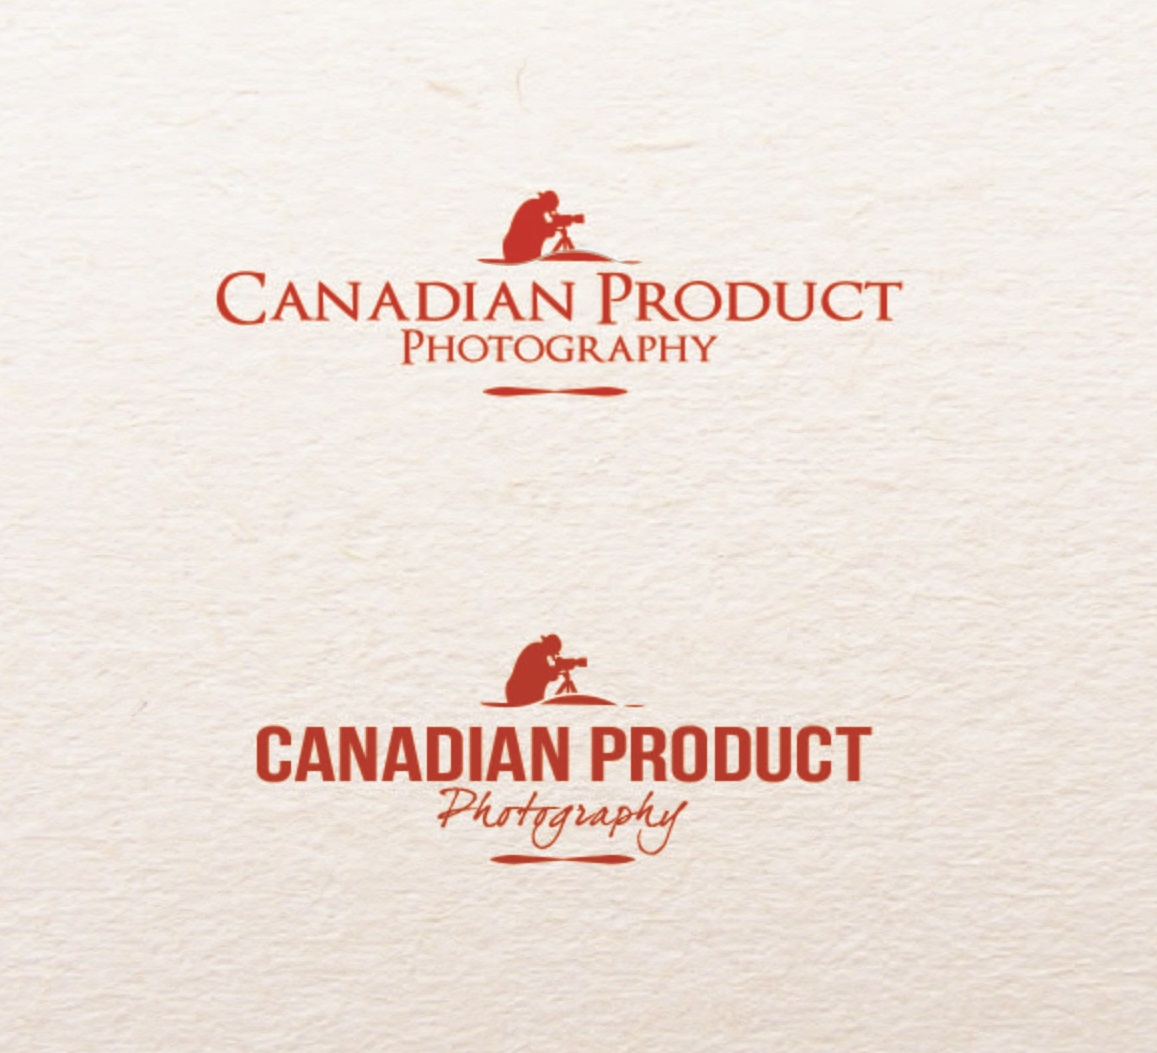 Logo Design by iwyn - Entry No. 14 in the Logo Design Contest Artistic Logo Design for Canadian Product Photography.